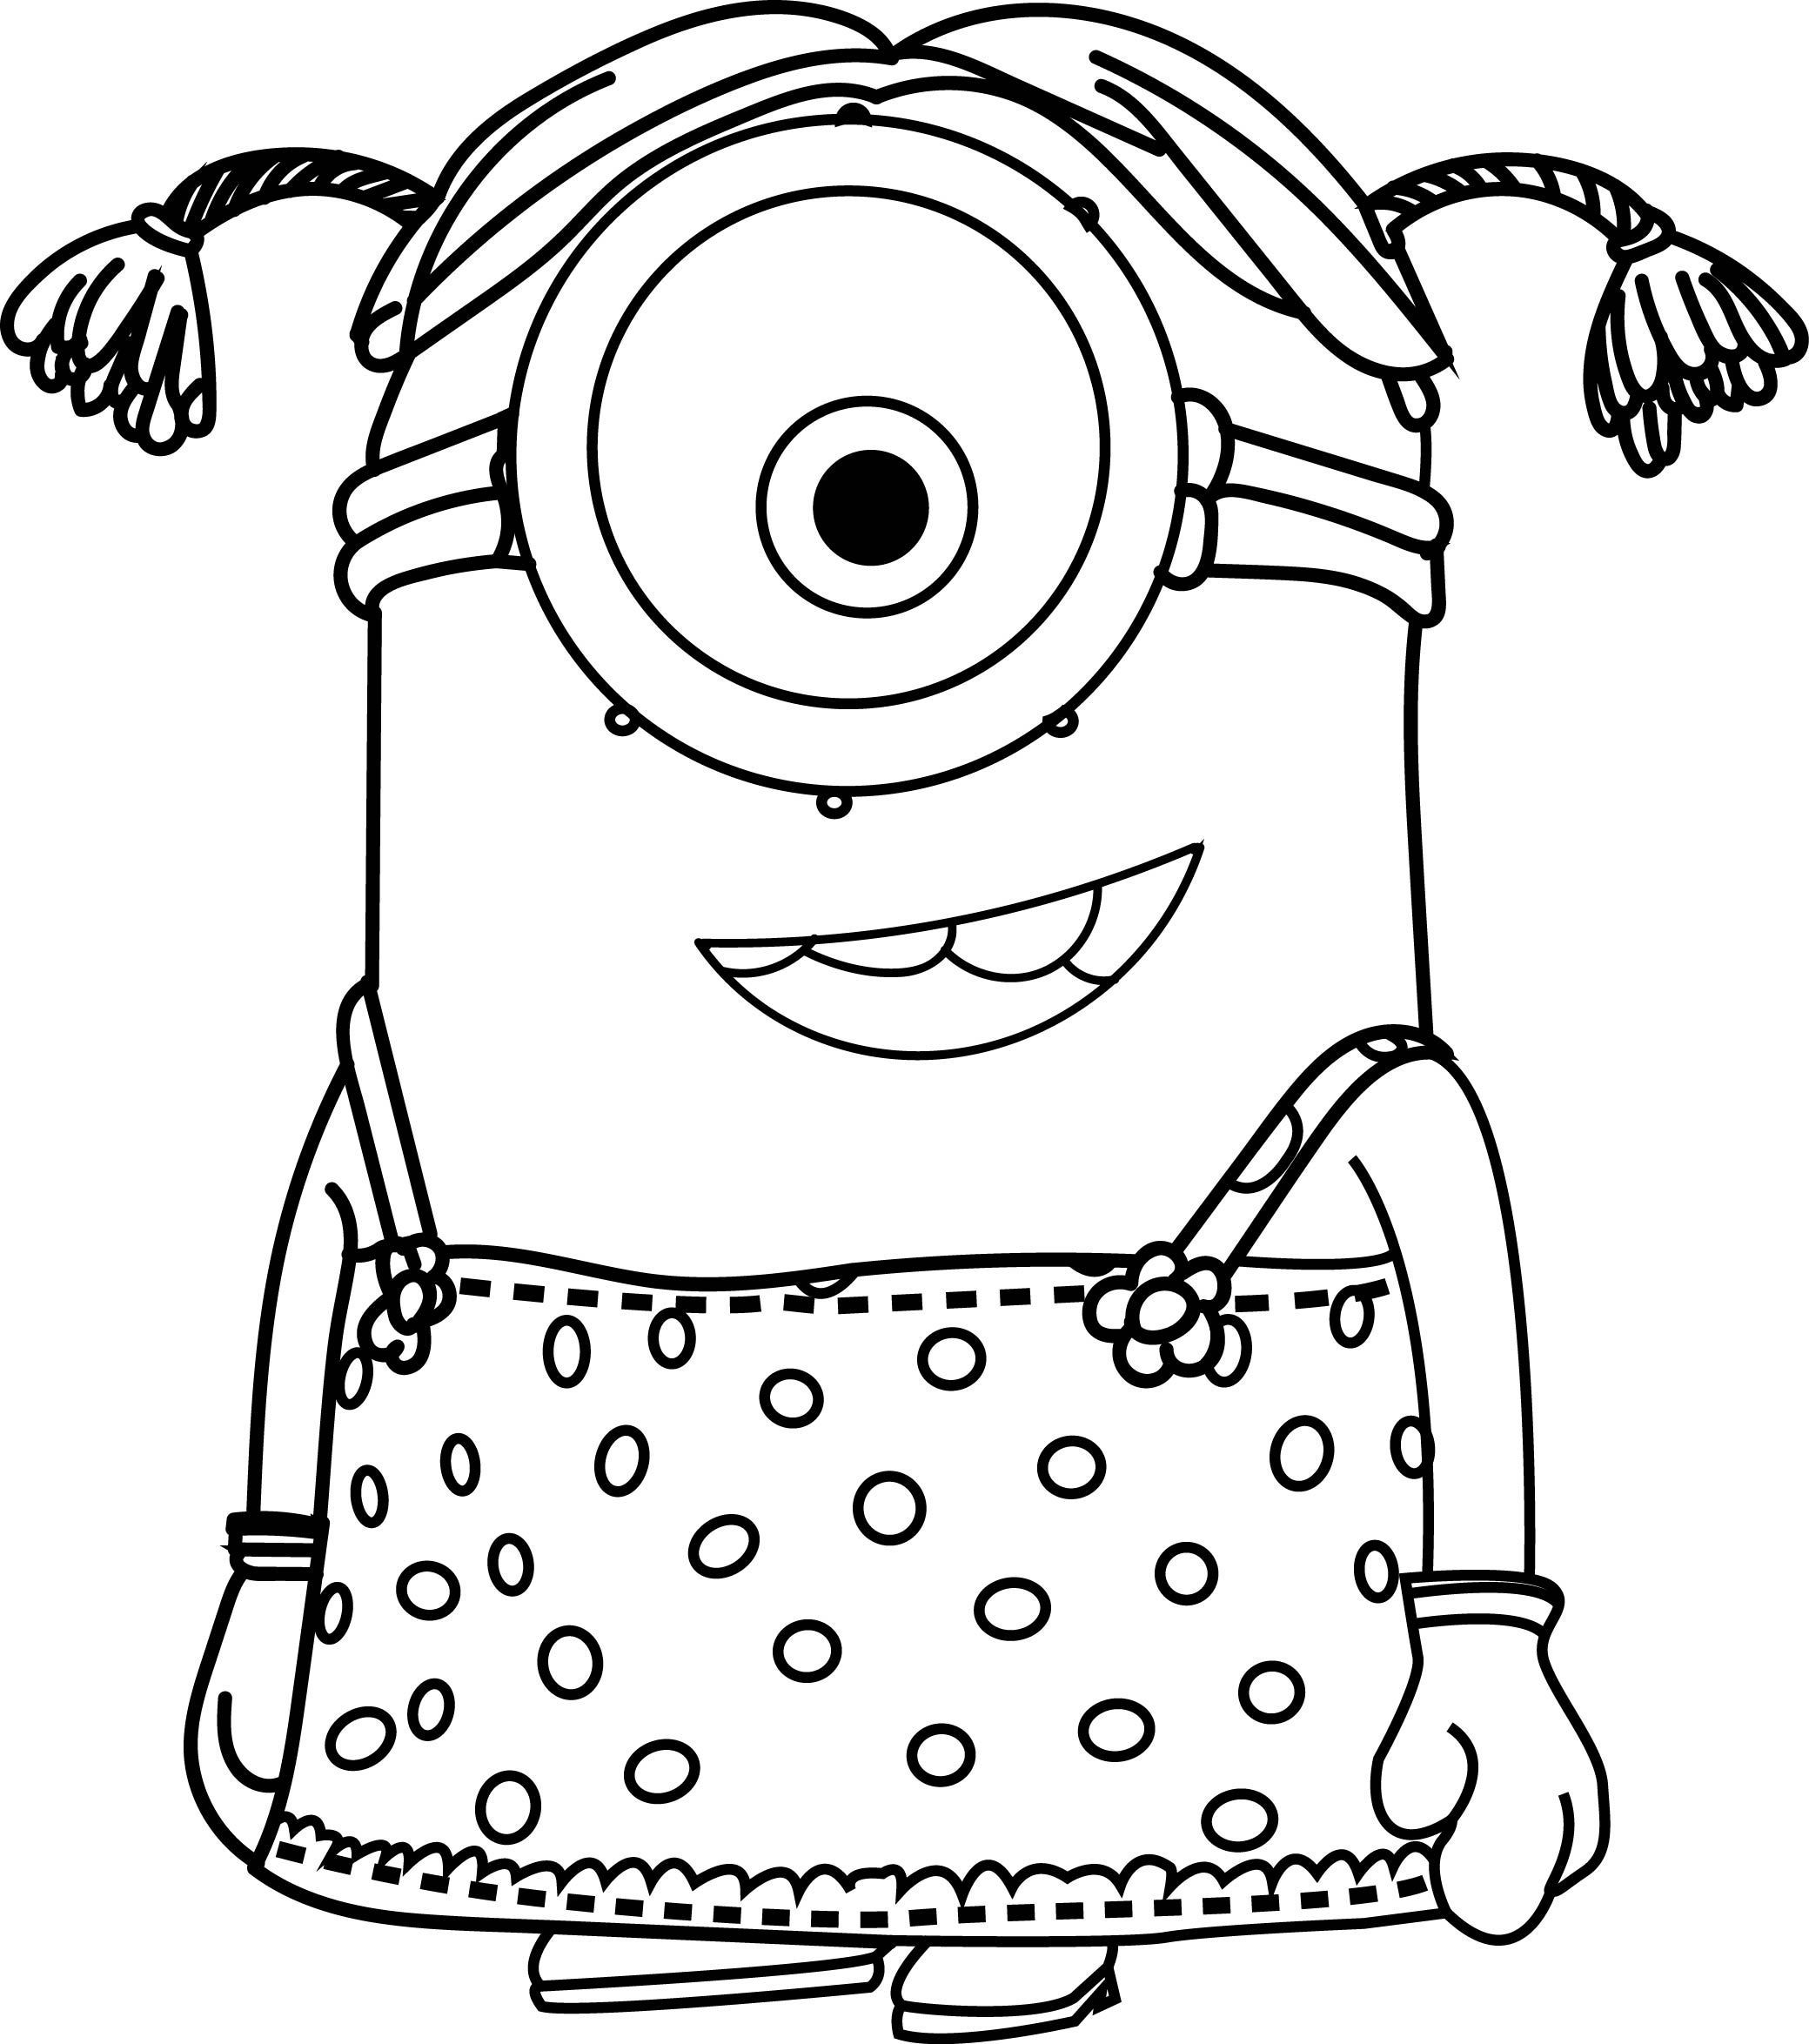 Pin By Rhonda Walter On Print Outs In 2020 Minion Coloring Pages Minions Coloring Pages Coloring Pages For Girls